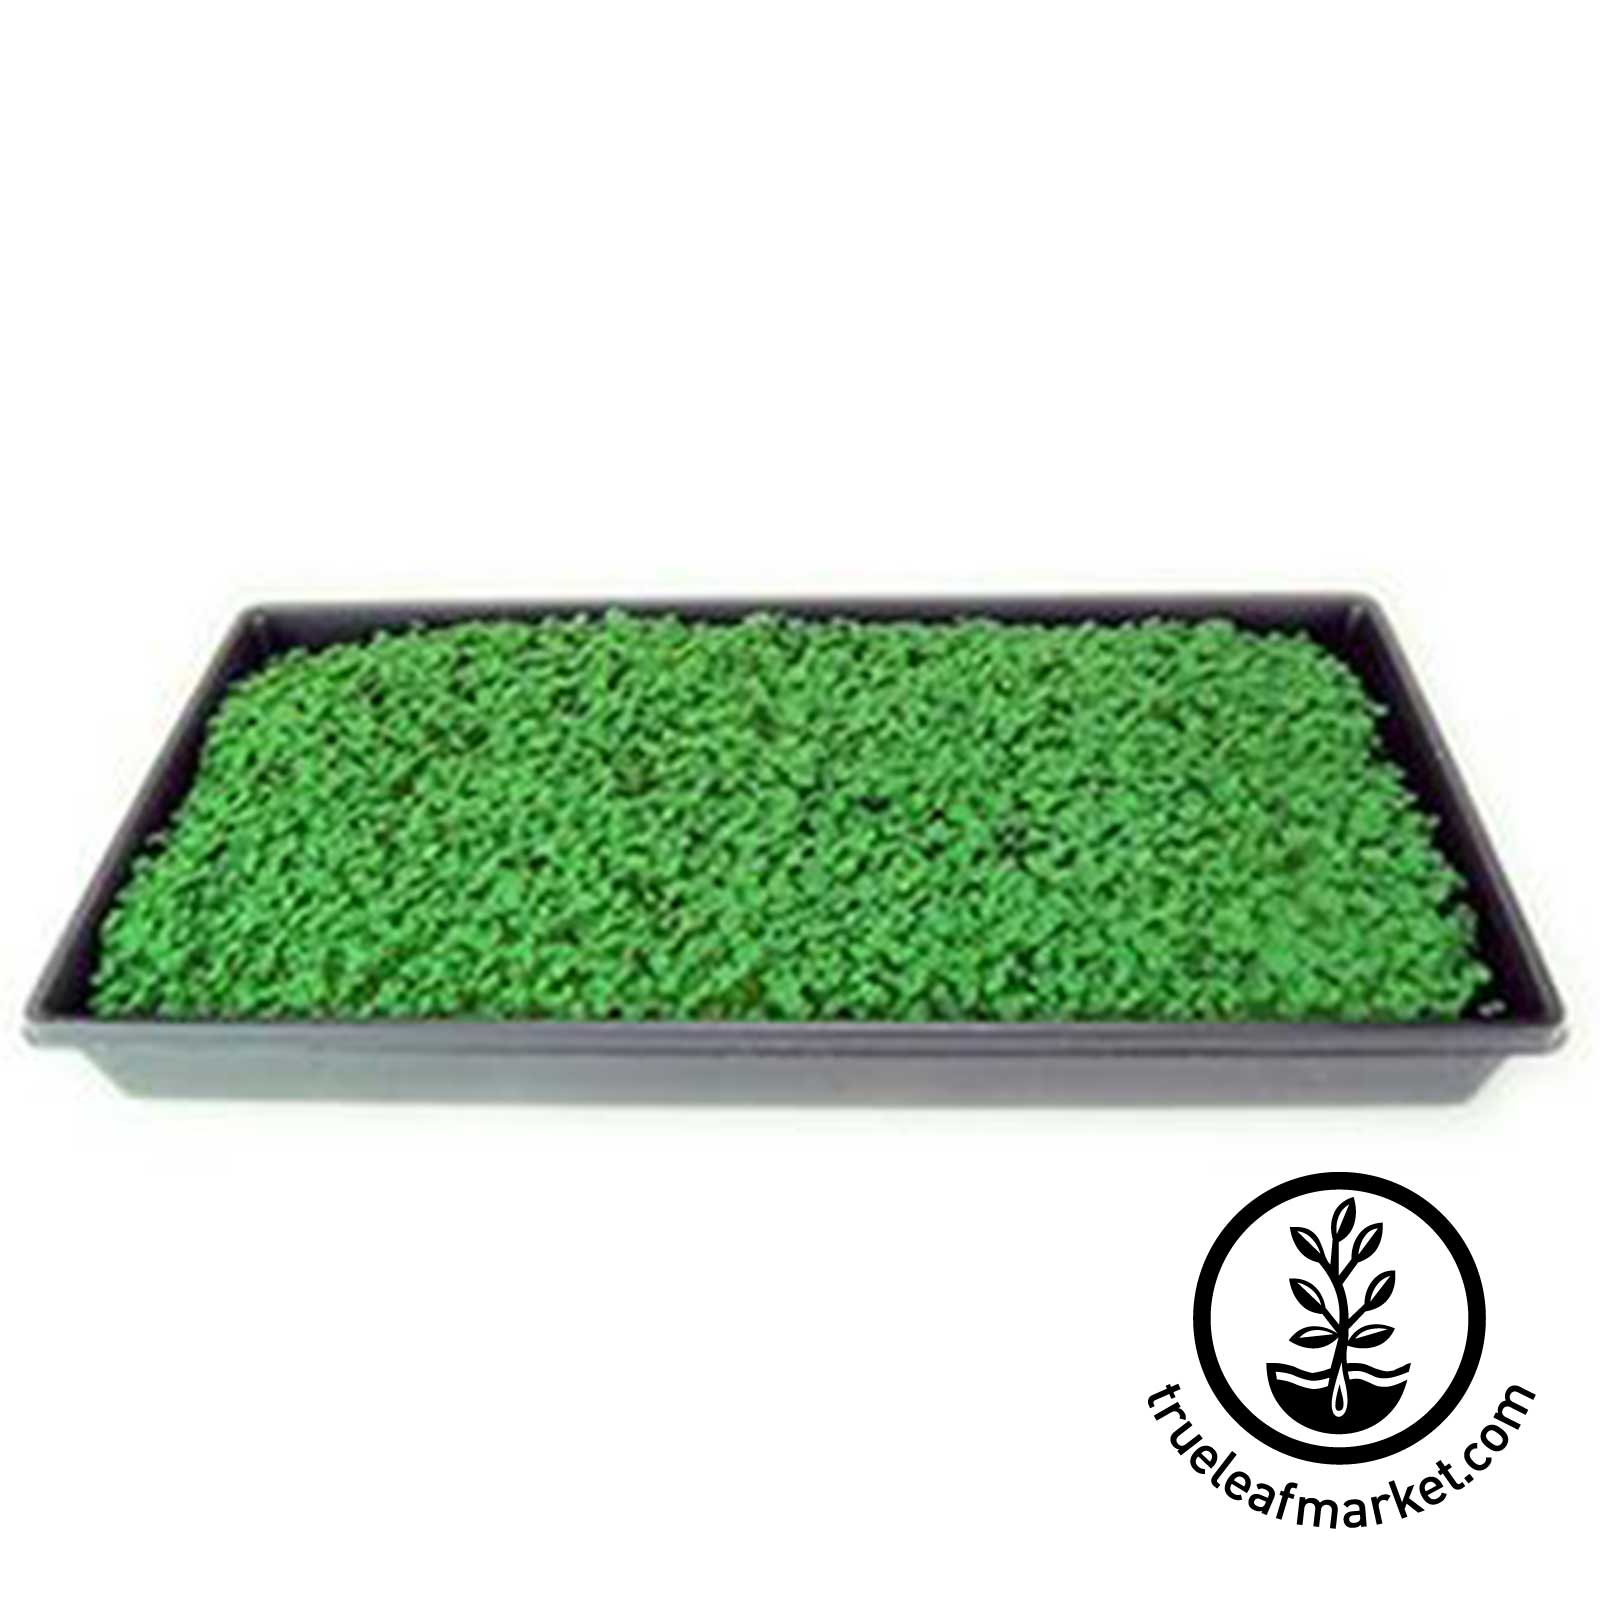 Tray of Chia Micros